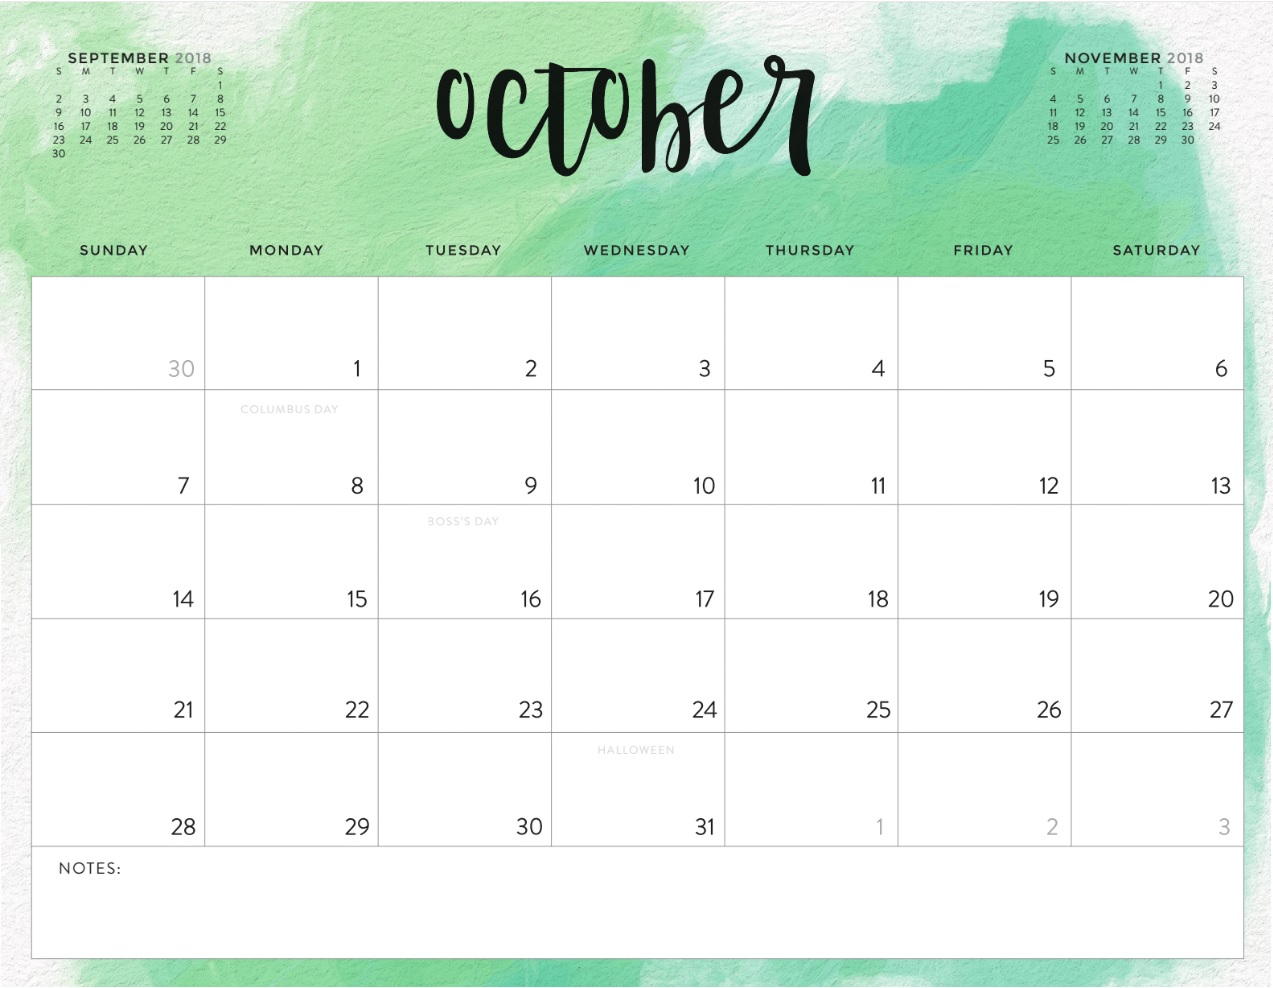 October 2018 Calendar For Desk & Wall